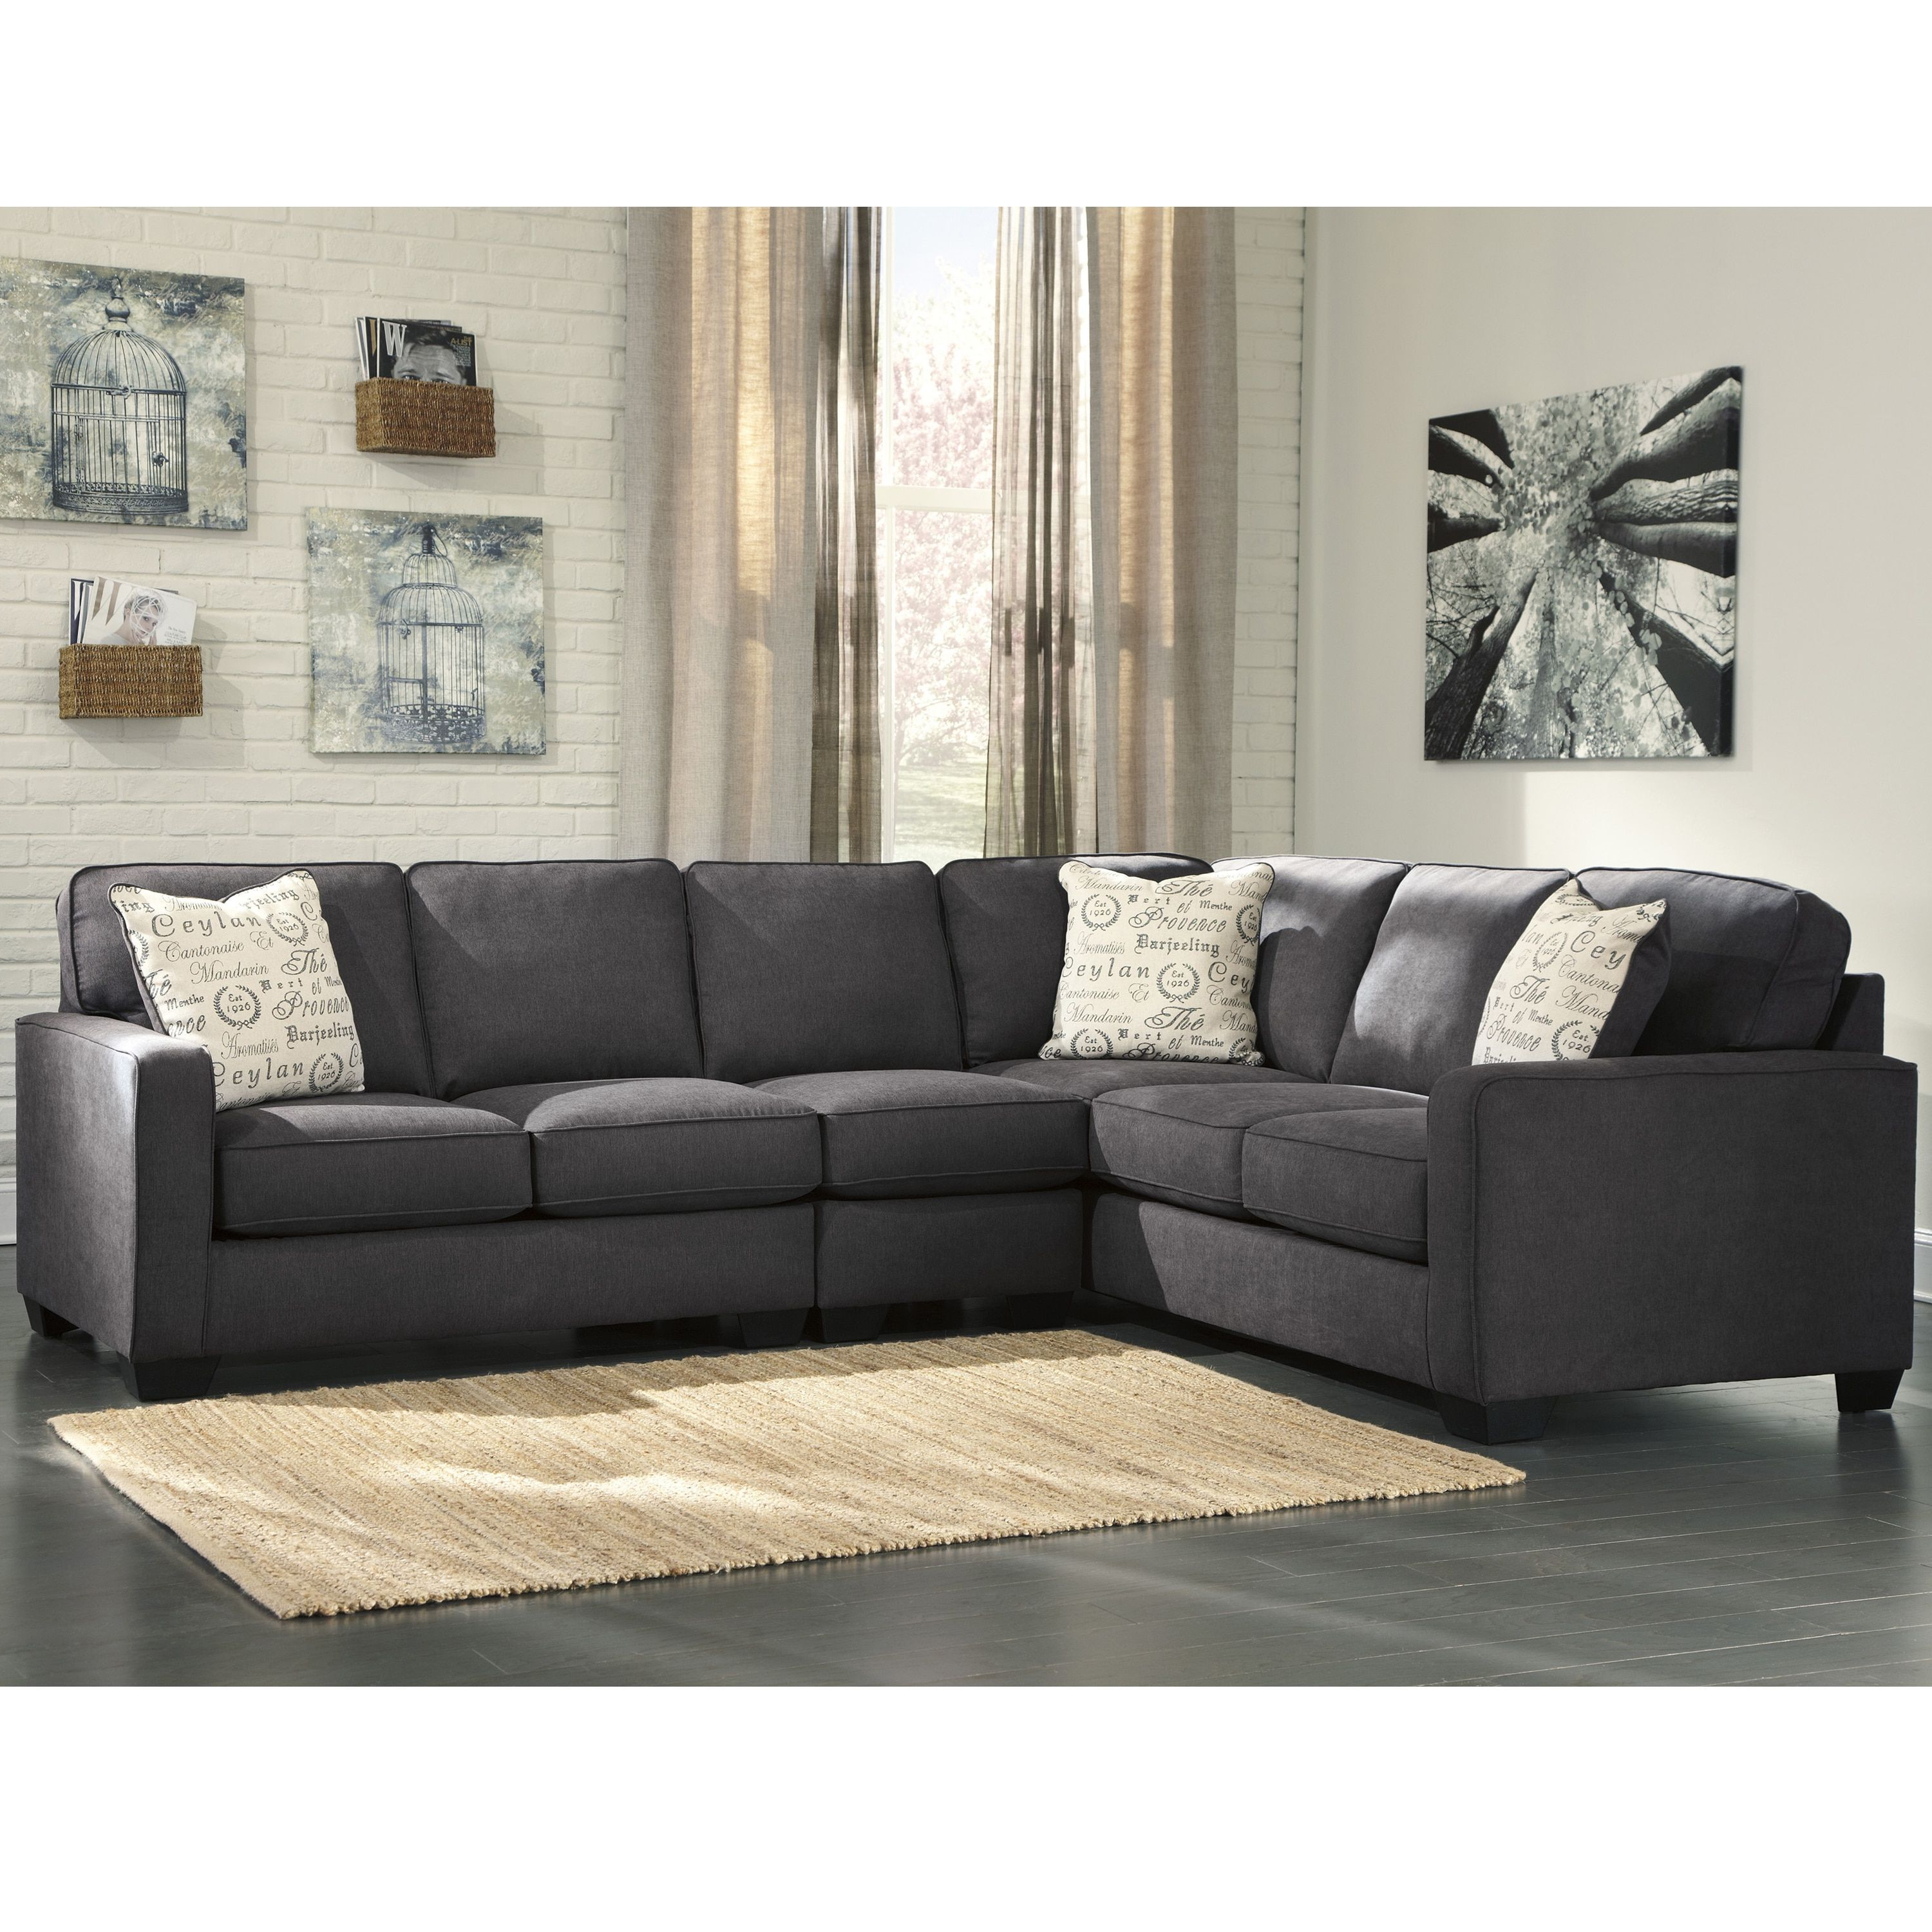 Most Current Signature Designashley Alenya 3 Piece Laf Sofa Sectional In For Marissa Ii 3 Piece Sectionals (View 18 of 20)